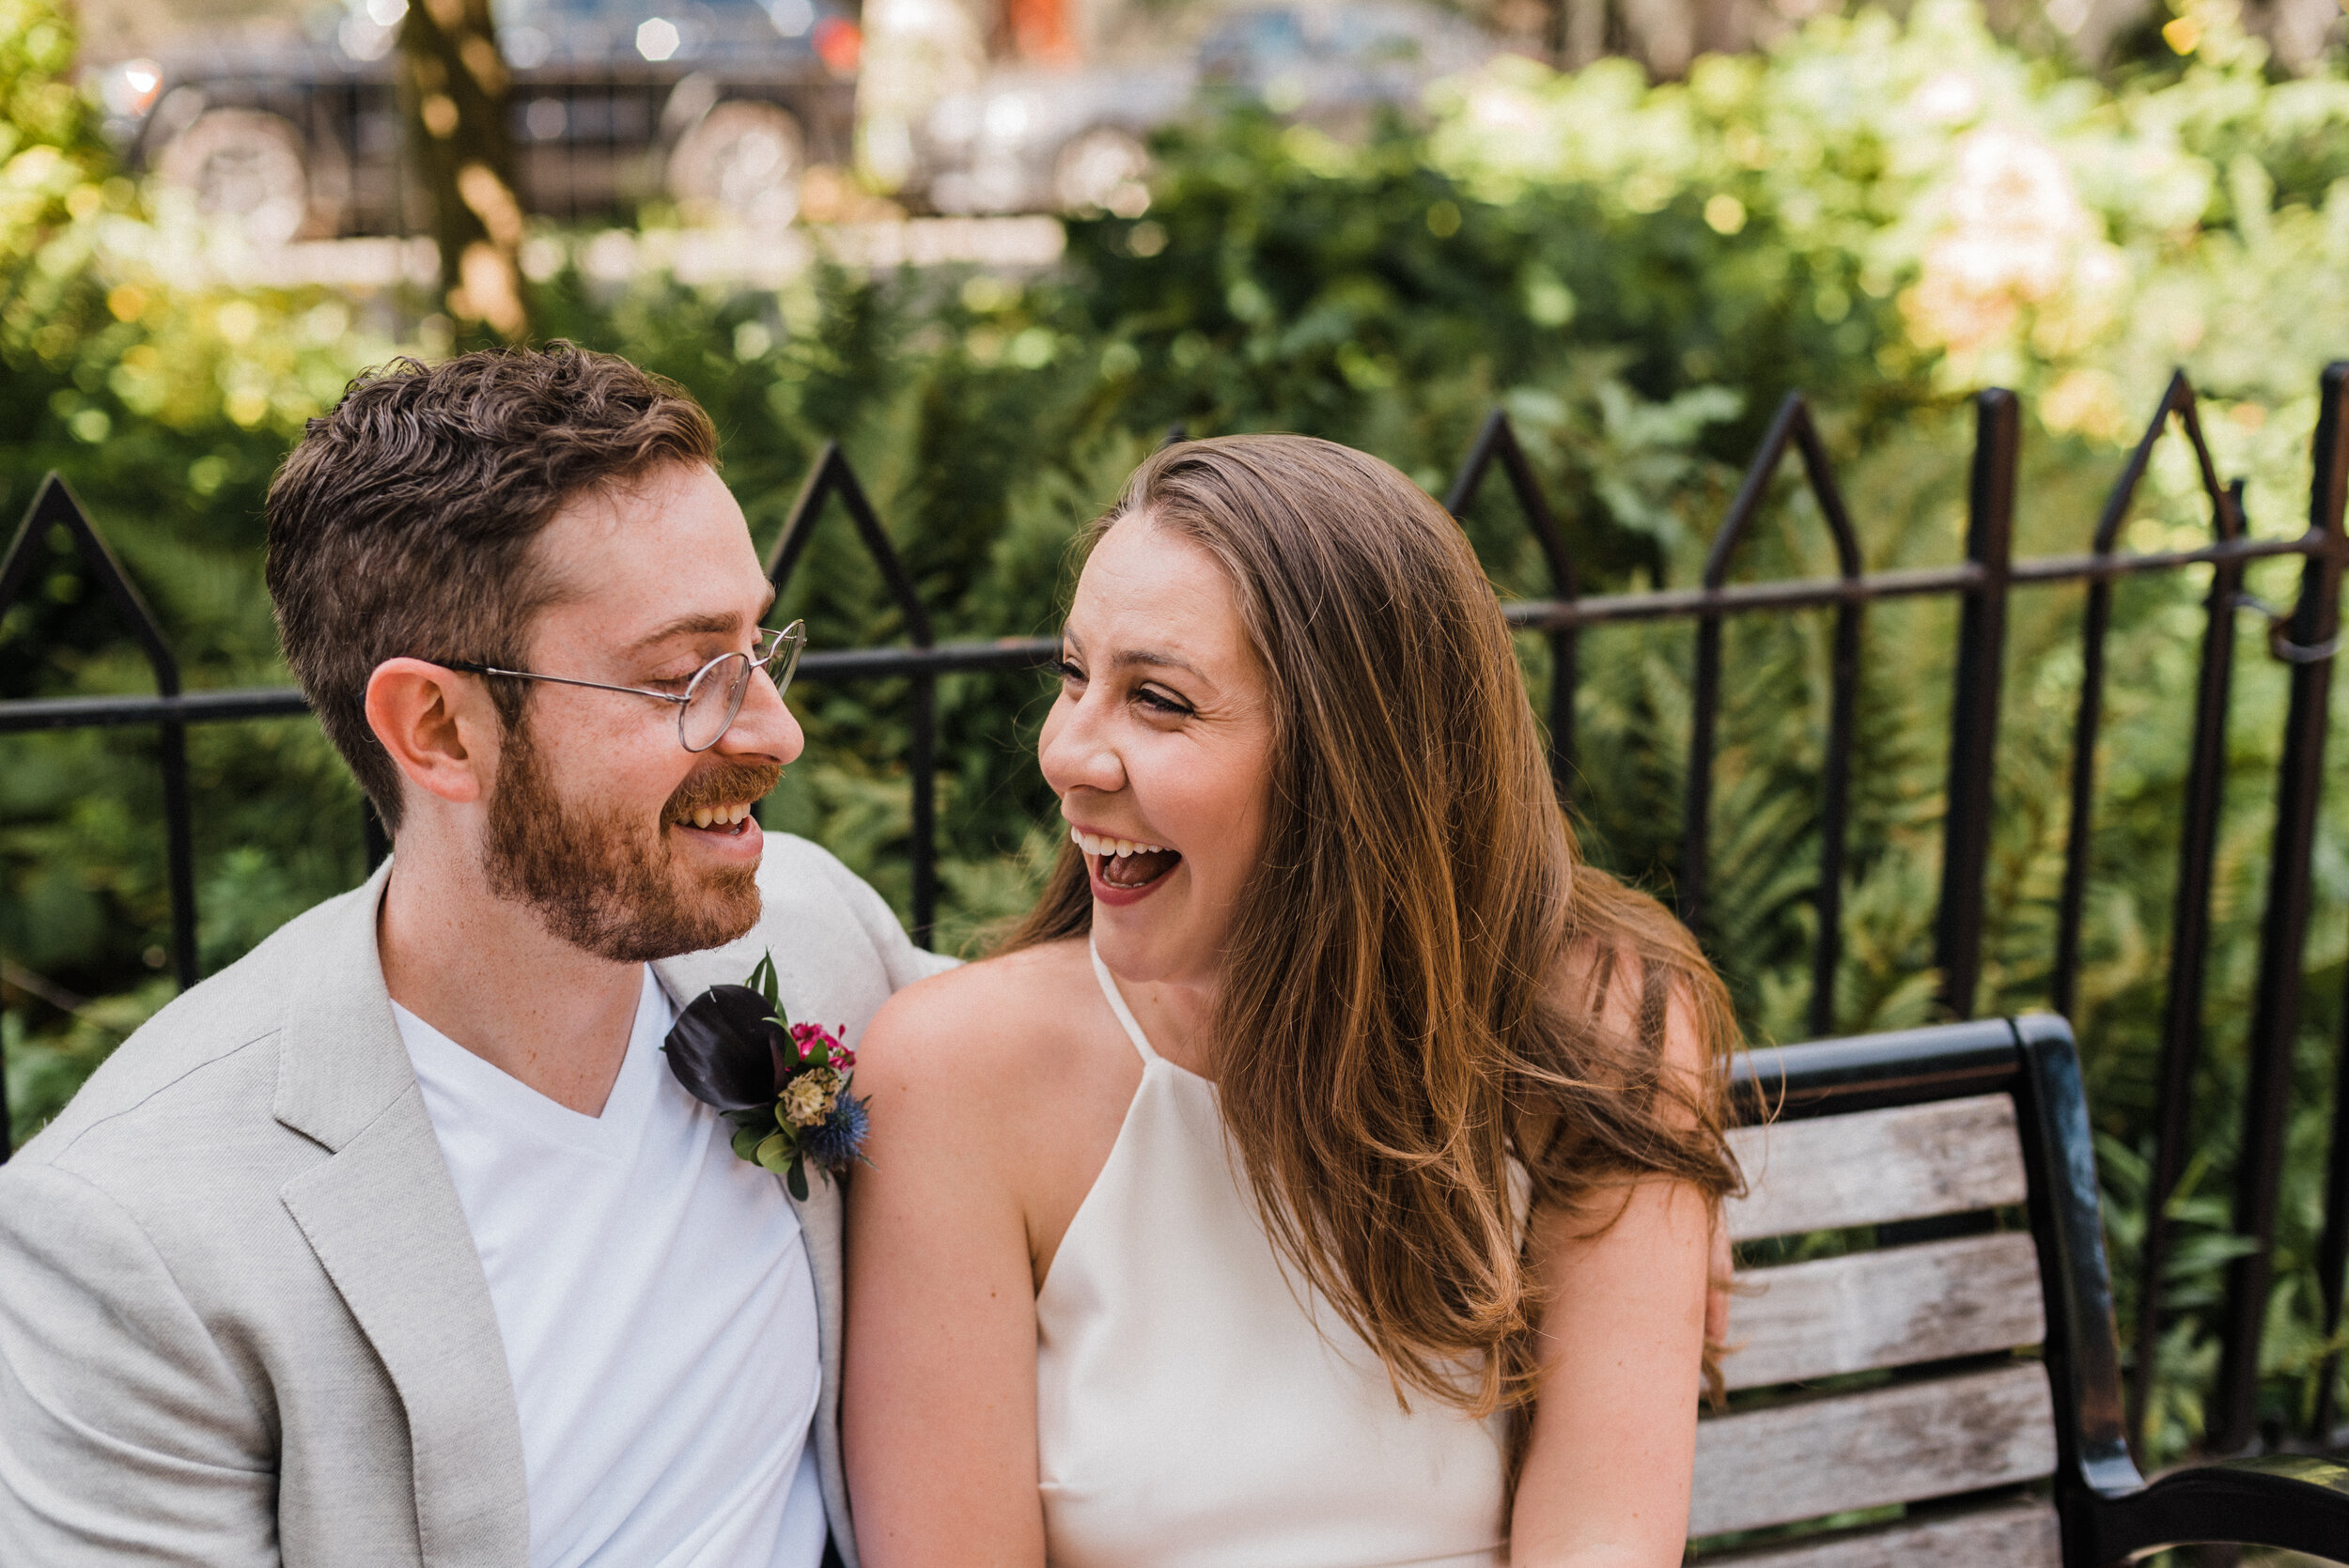 Wedding couple laughing together on a park bench in Philadelphia.